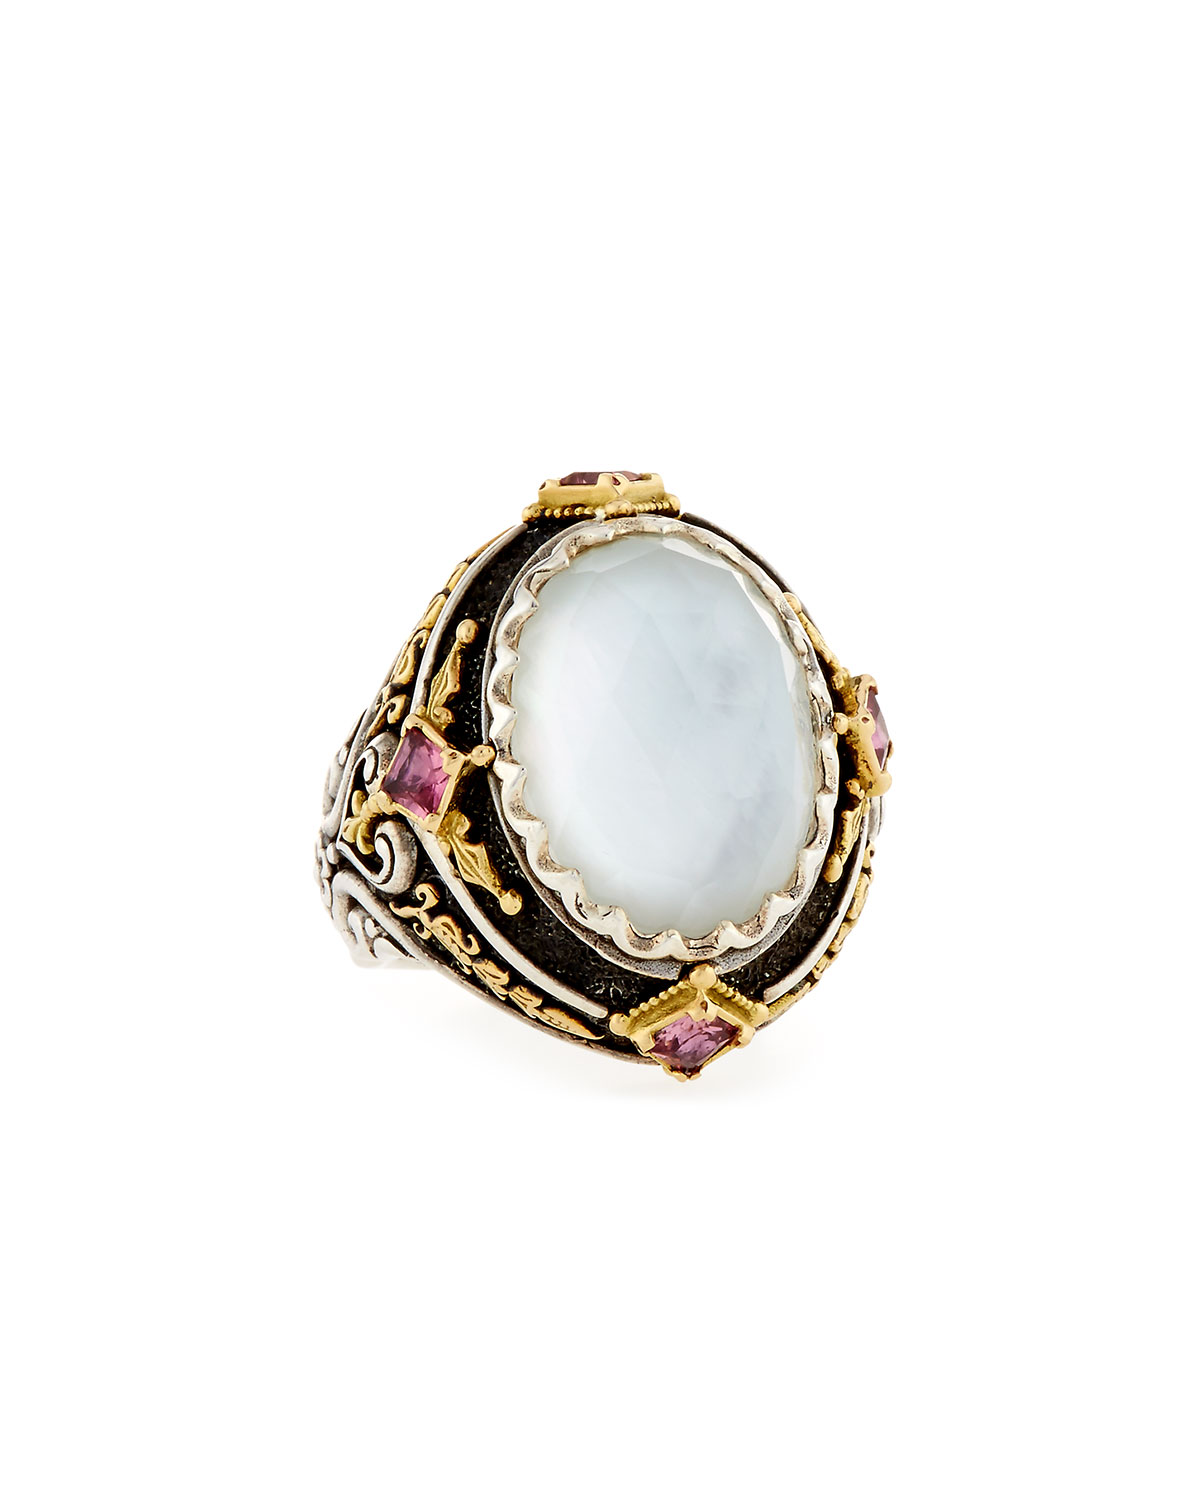 Konstantino North-South Mother-of-Pearl Ring with Pink Crystal Quartz Over Sapphire & Tourmaline IaJKlnPKEf